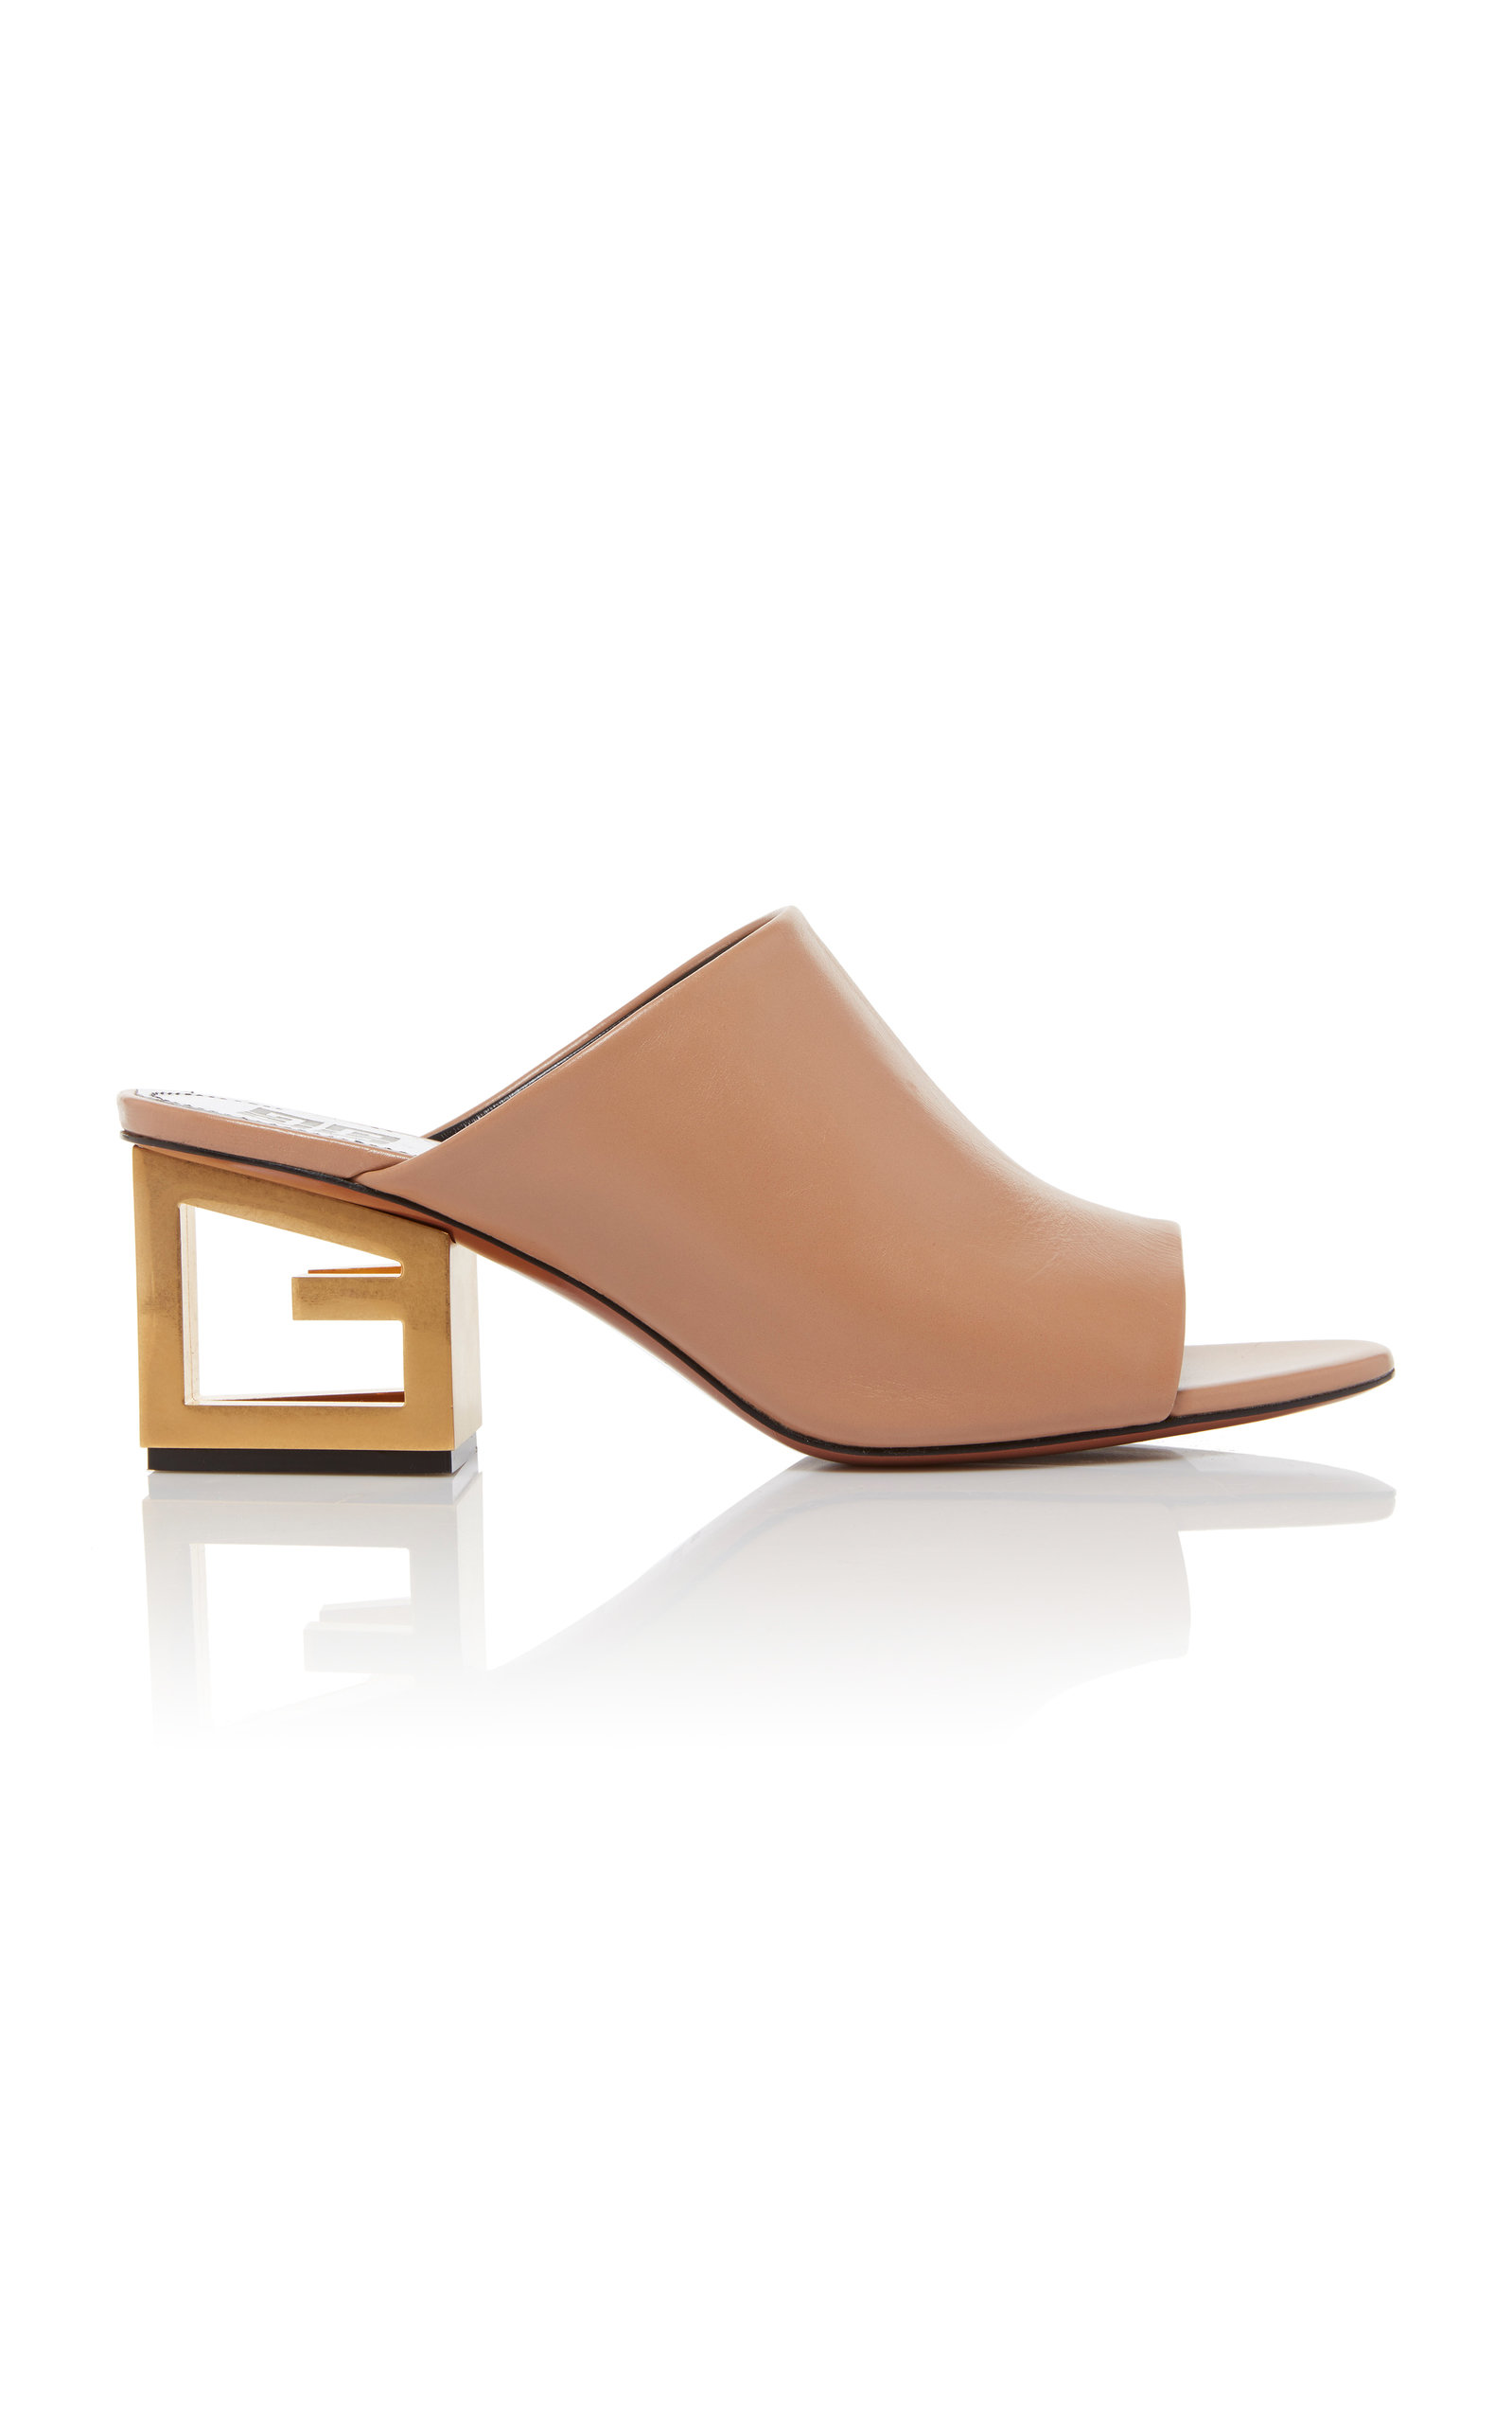 dbe4b2522d8d2 Triangle Open-Toe Leather Mules by Givenchy | Moda Operandi